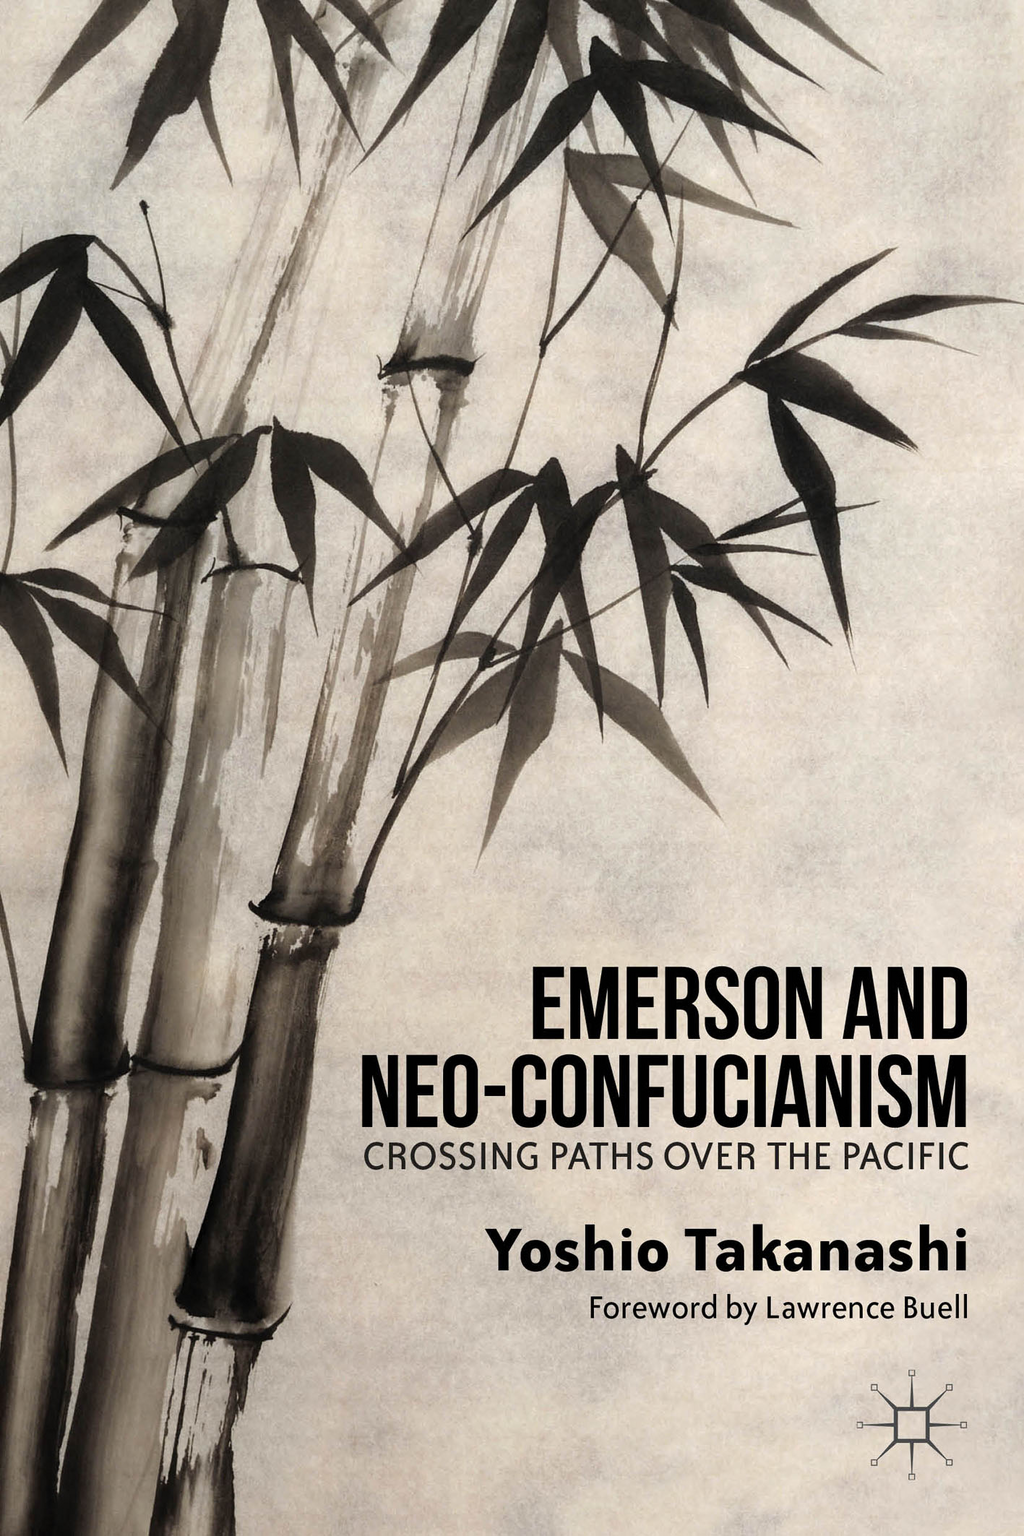 Emerson and Neo-Confucianism Crossing Paths over the Pacific